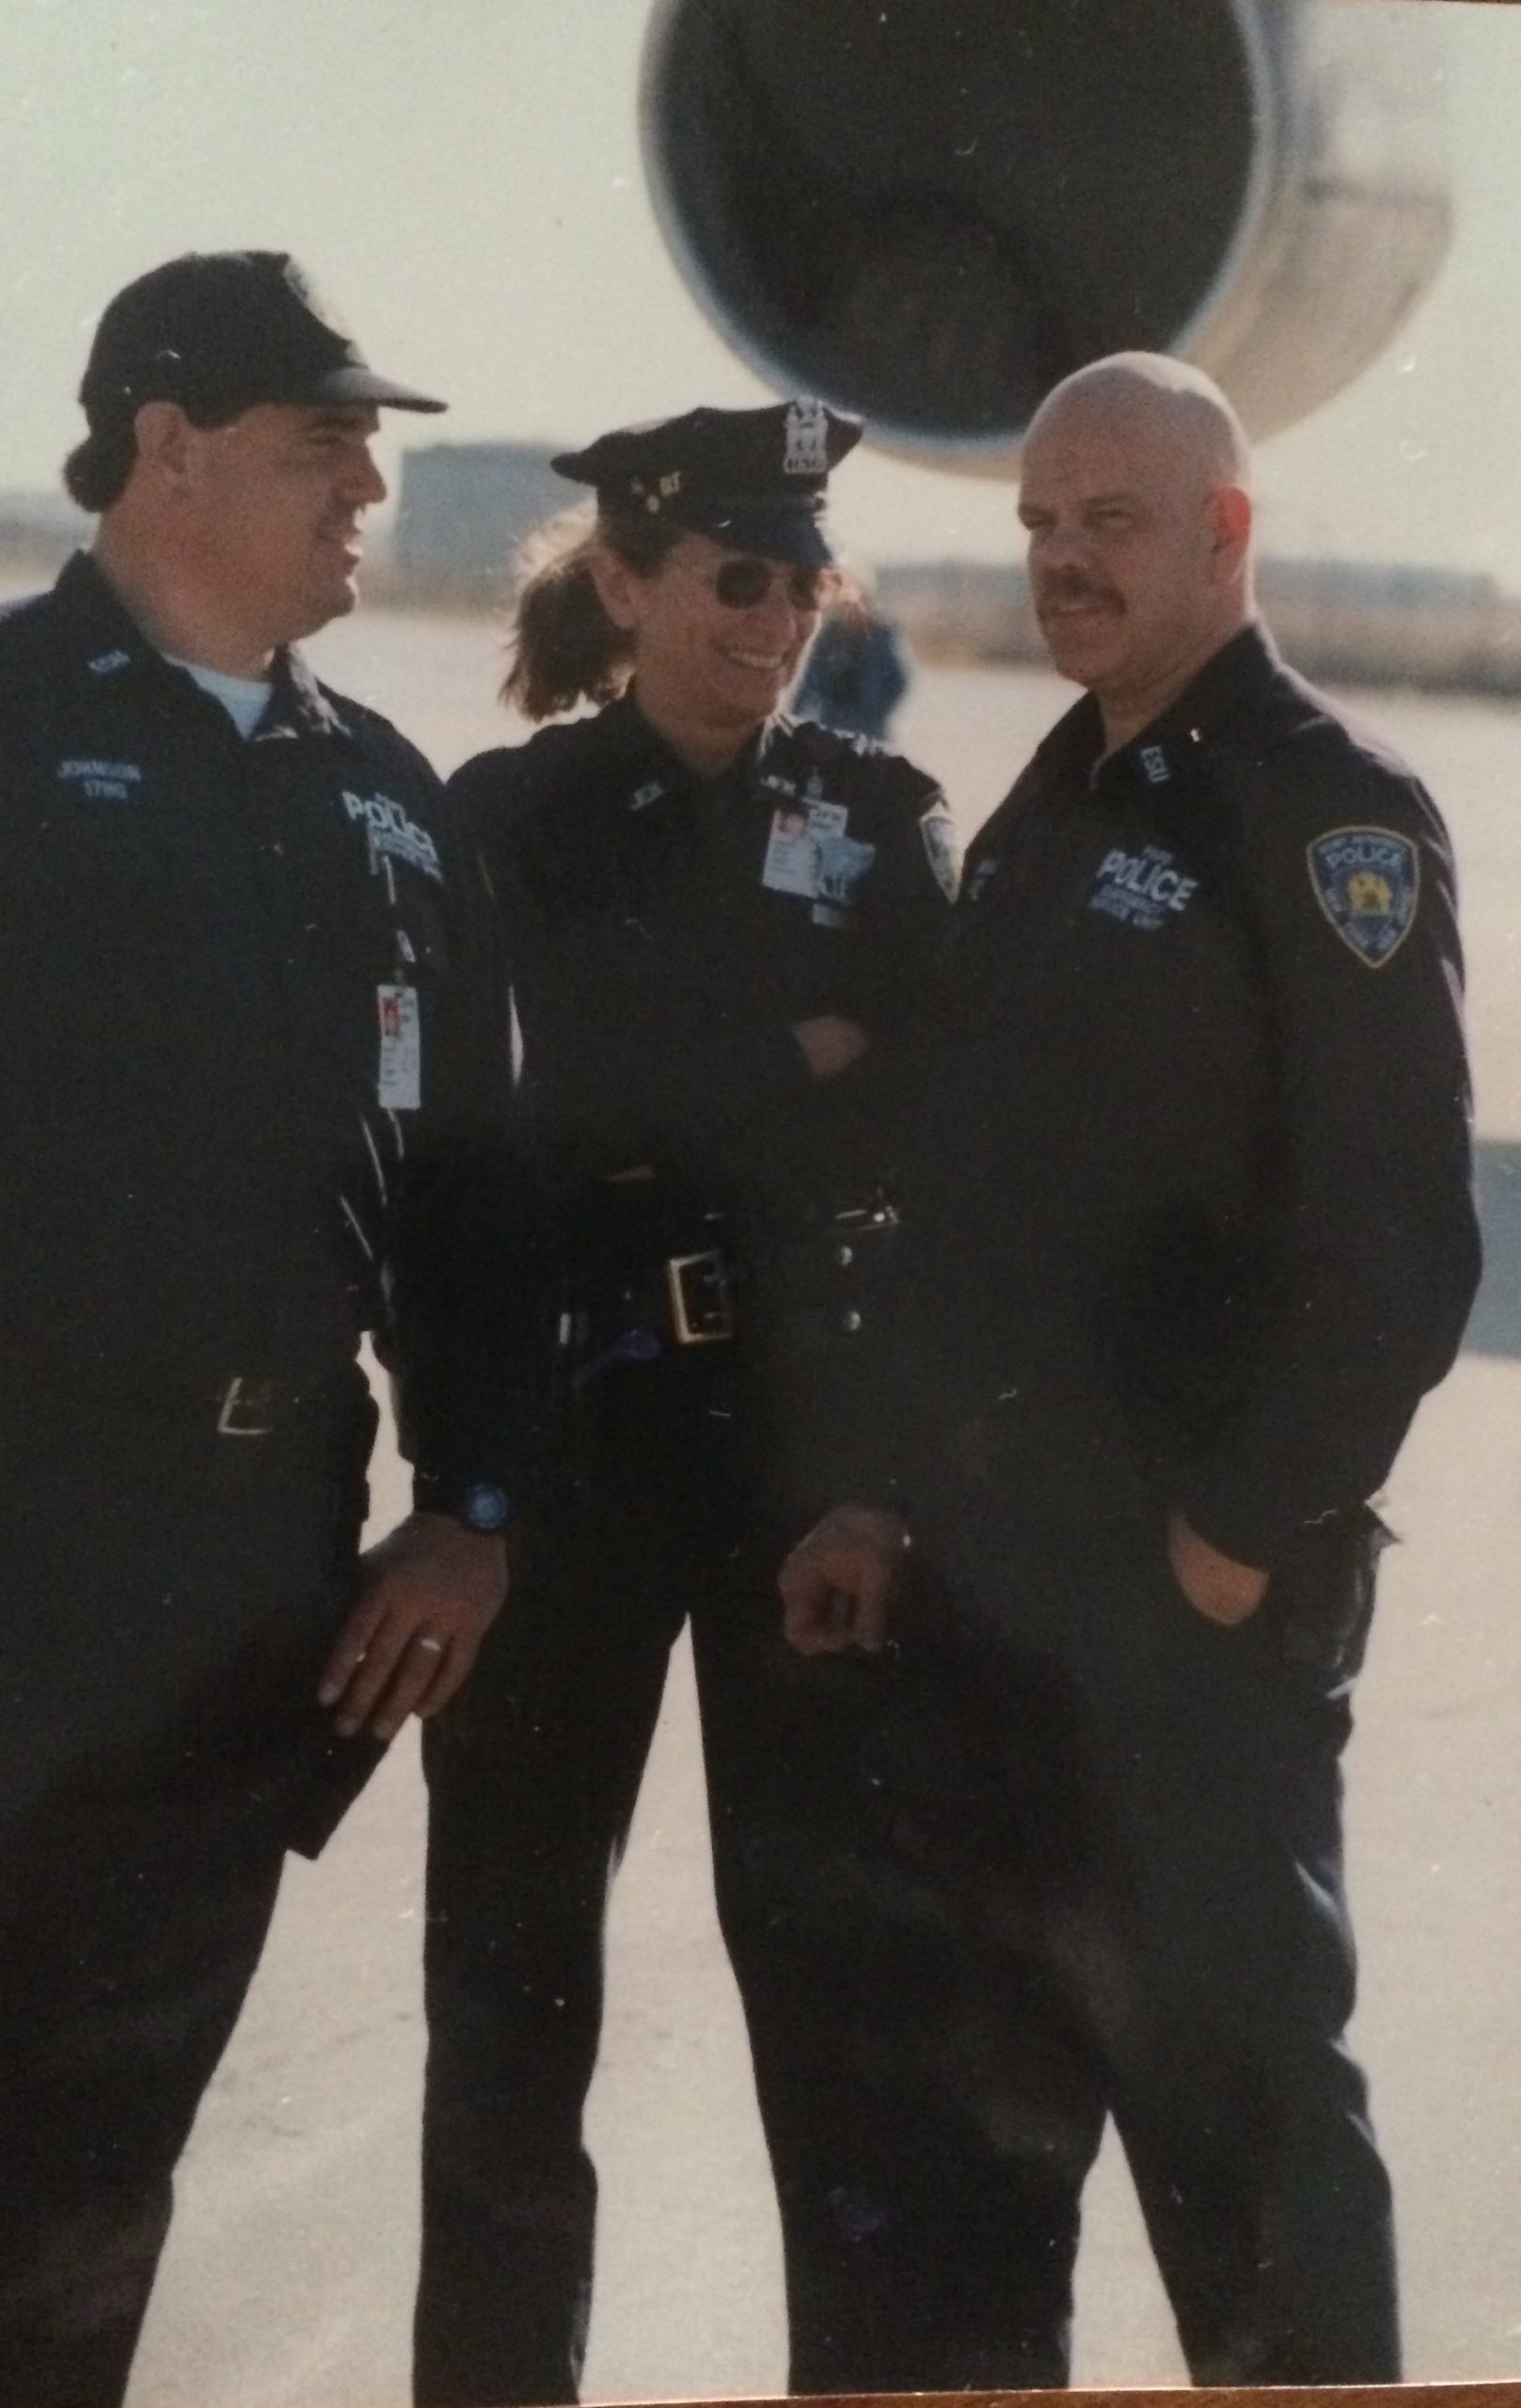 Port Authority Police Officers Pete Johnson, Doris Caridi and George Howard prior to September 11, 2001. Mr. Howard was killed by raining debris during the aftermath of the terrorist attack, after rushing to the scene on his day off to help.